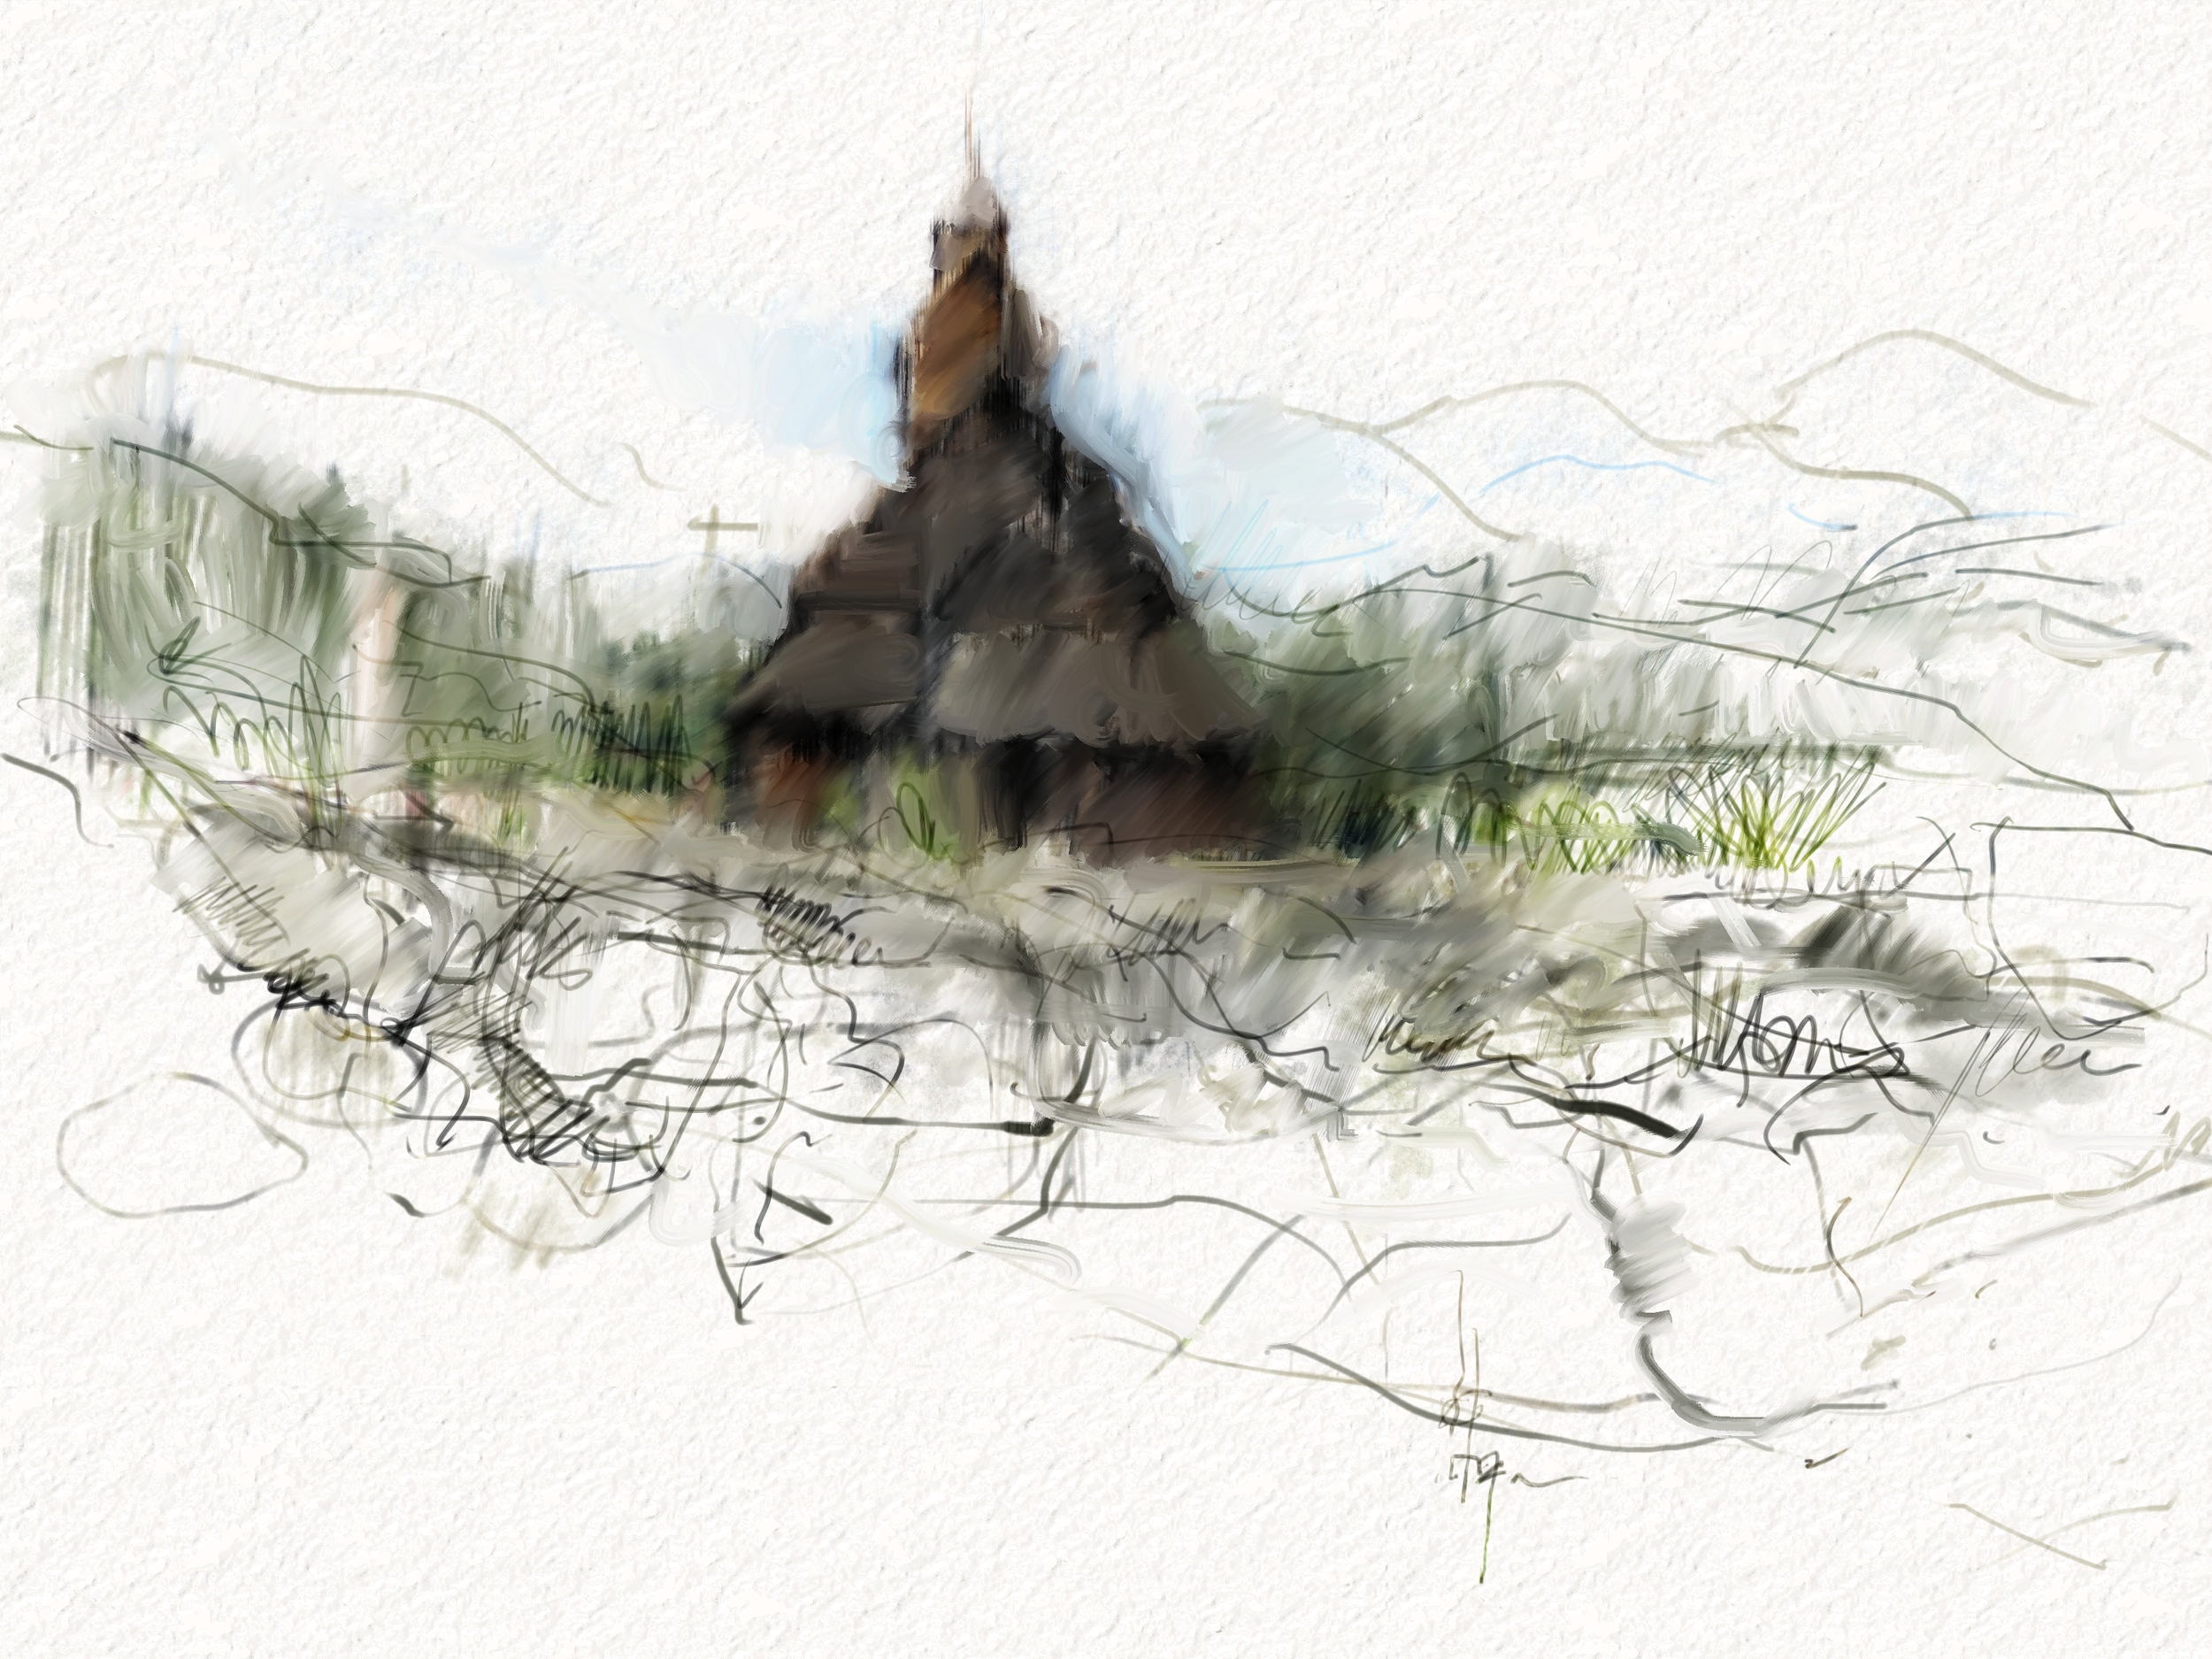 High high high up in the mountains of Norway is this ancient old wooden church. Exactly as you see it in pictures of Norway, only, to be able to actually visit it in person is extraordinary. You step way way way back in time.   Testing out what Coral Painter can do. I feel I have only touched the surface of this digital medium...it's a whole new thing for most artists, myself included. 1 hour sketch, if that.